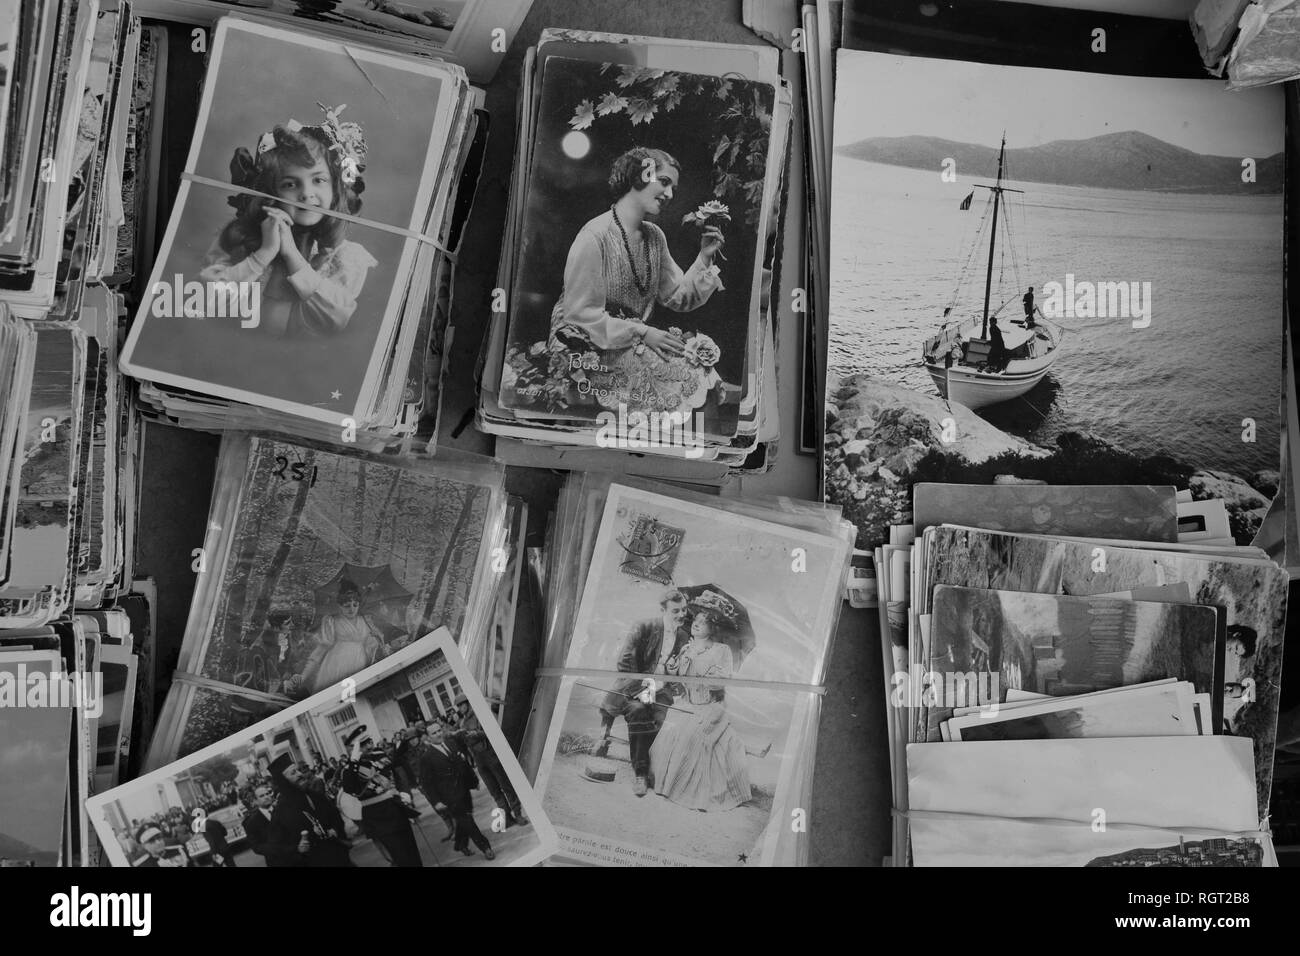 ATHENS, GREECE - SEPTEMBER 14, 2018: Collection of vintage postcards and old photographs at flea market antiques store. Black and white. - Stock Image